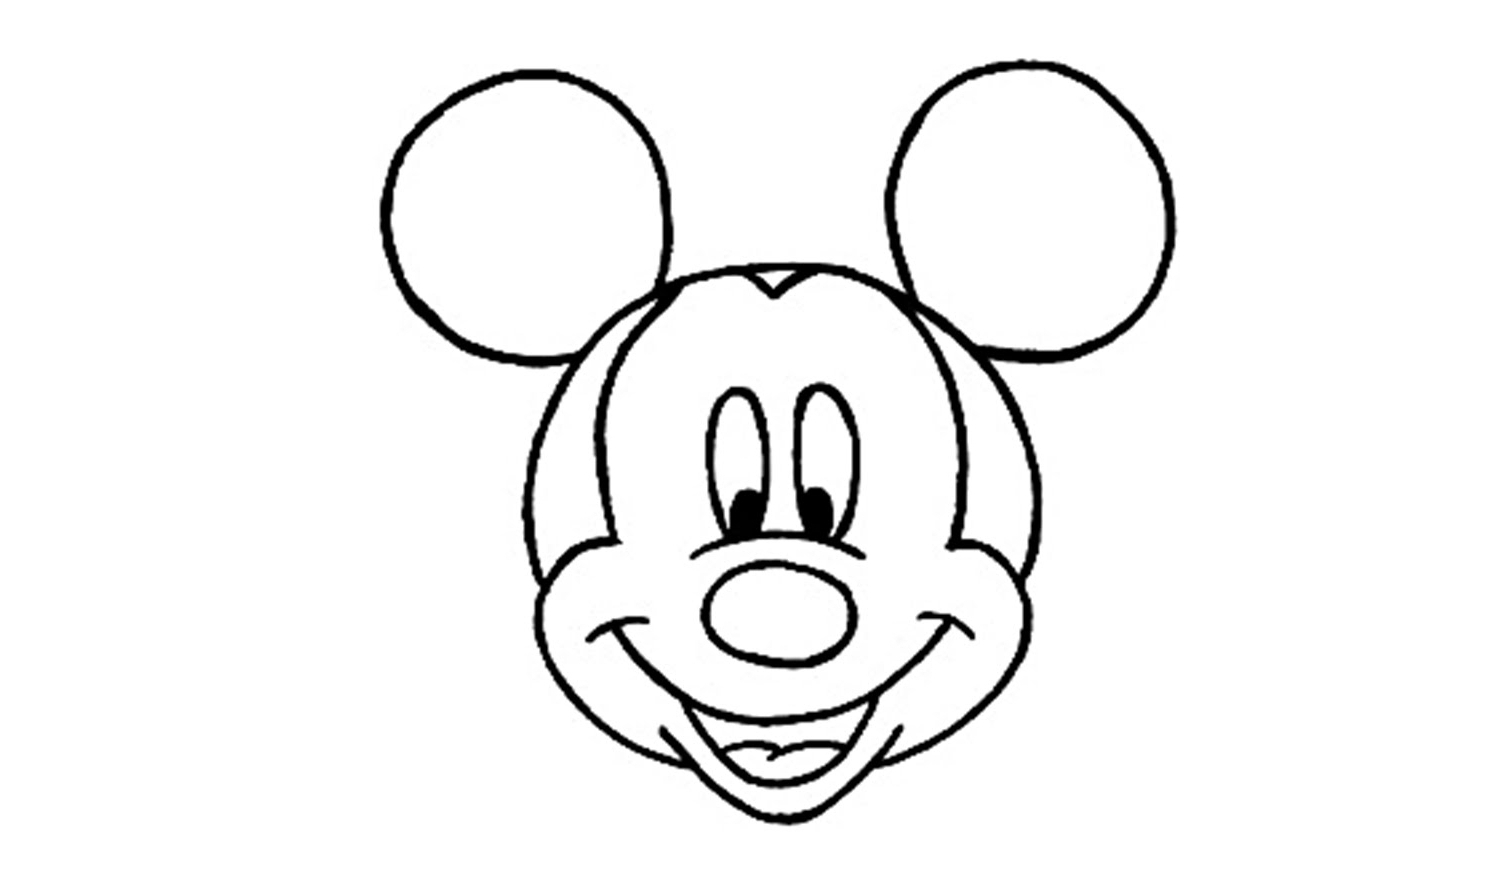 easy mickey mouse drawing mickey mouse zeichnen ausmalbilder und vorlagen mickey mouse easy drawing